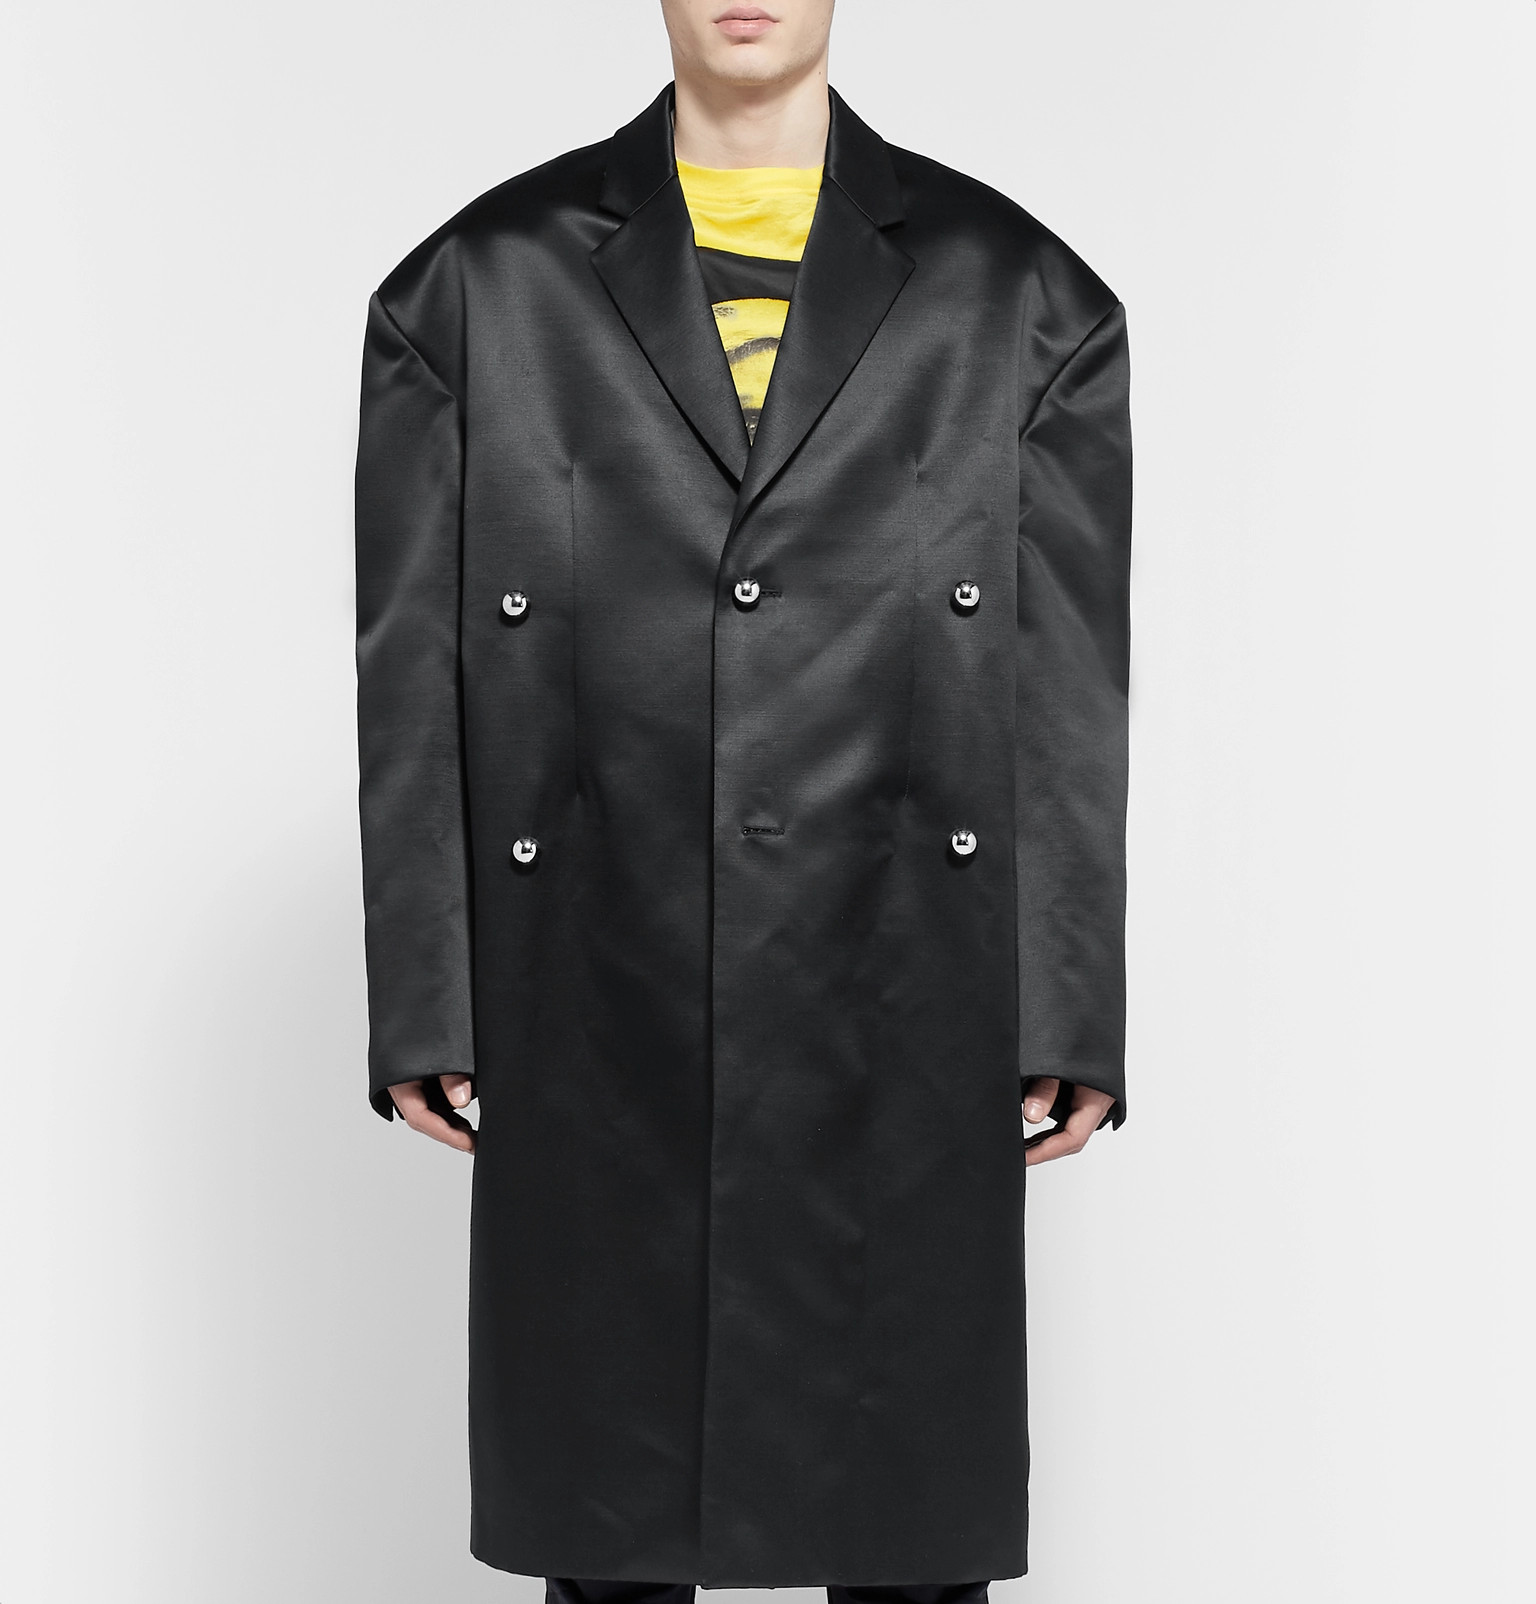 f383544ed0edda Raf Simons - Oversized Wool and Silk-Blend Duchess Satin Coat